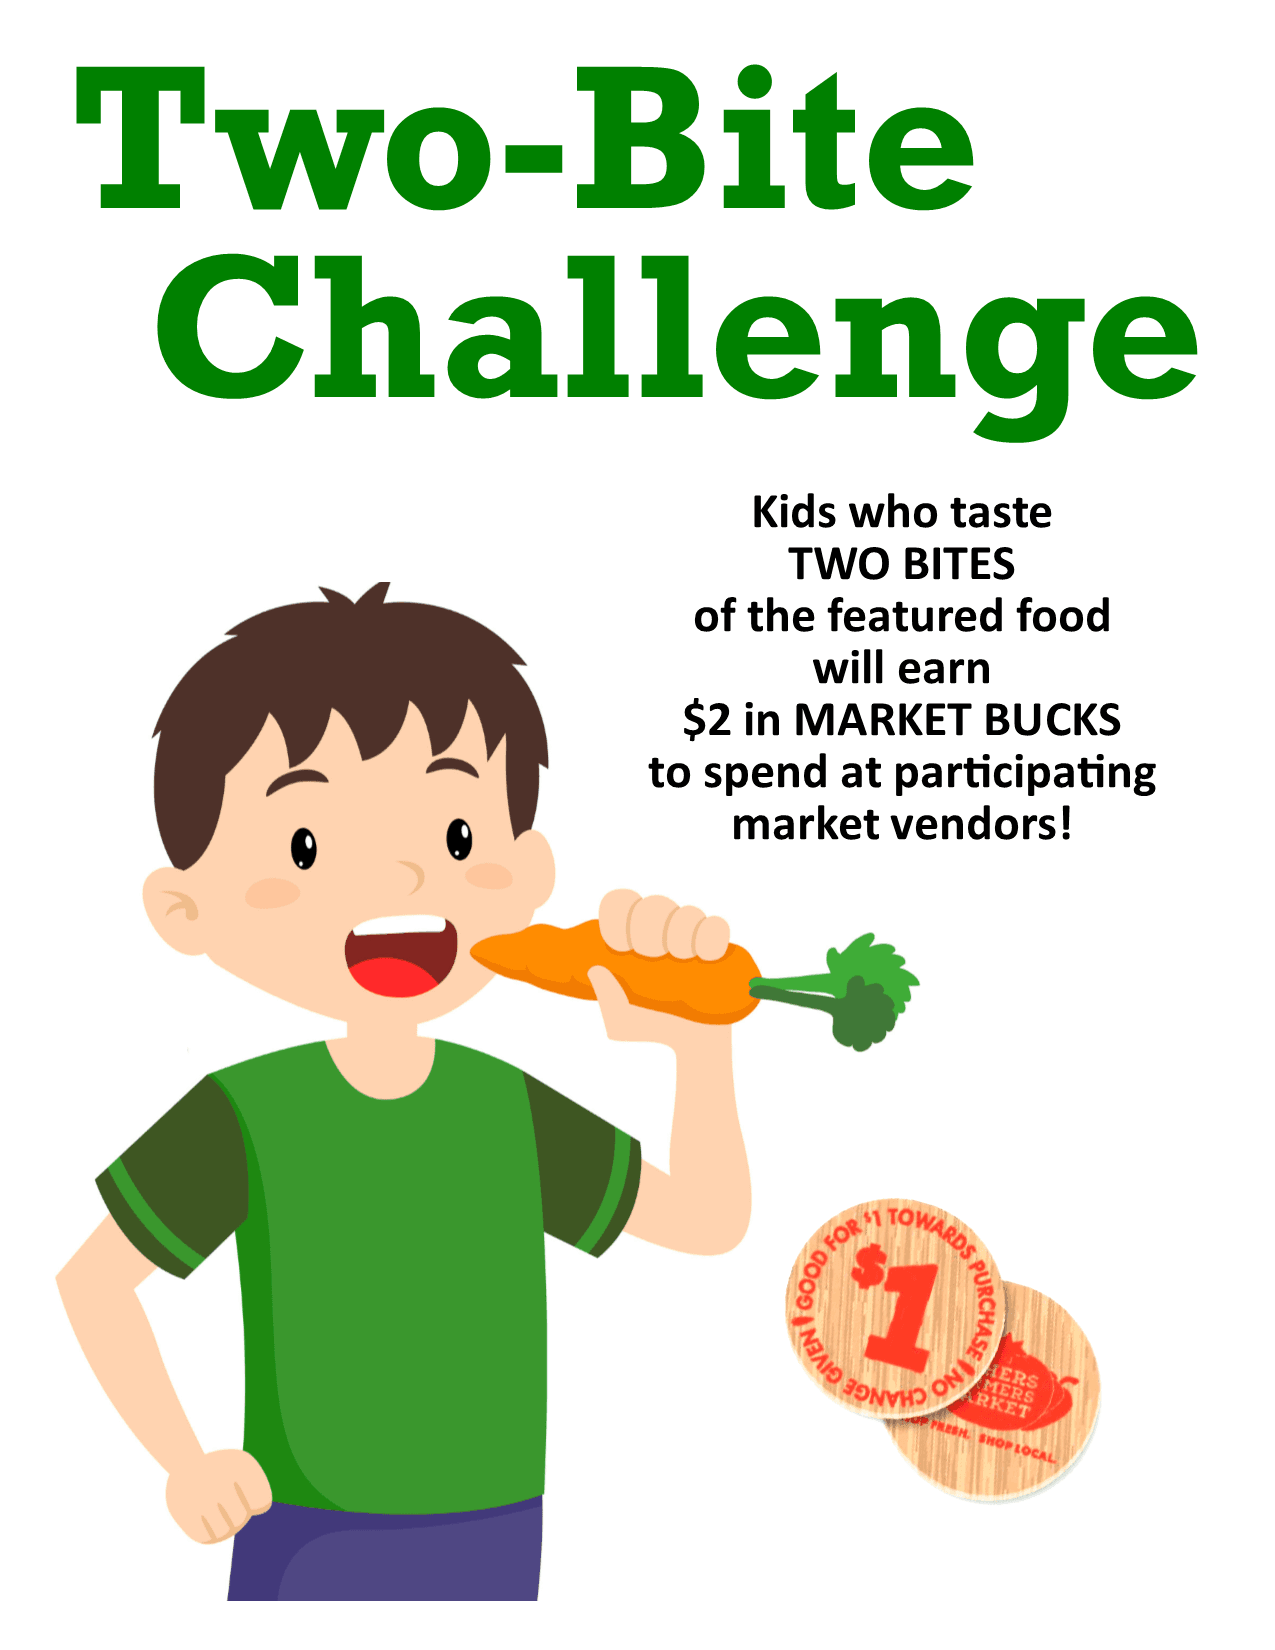 Two bite challenge: kids who taste two bites of the featured food will earn $2 in market bucks to sp